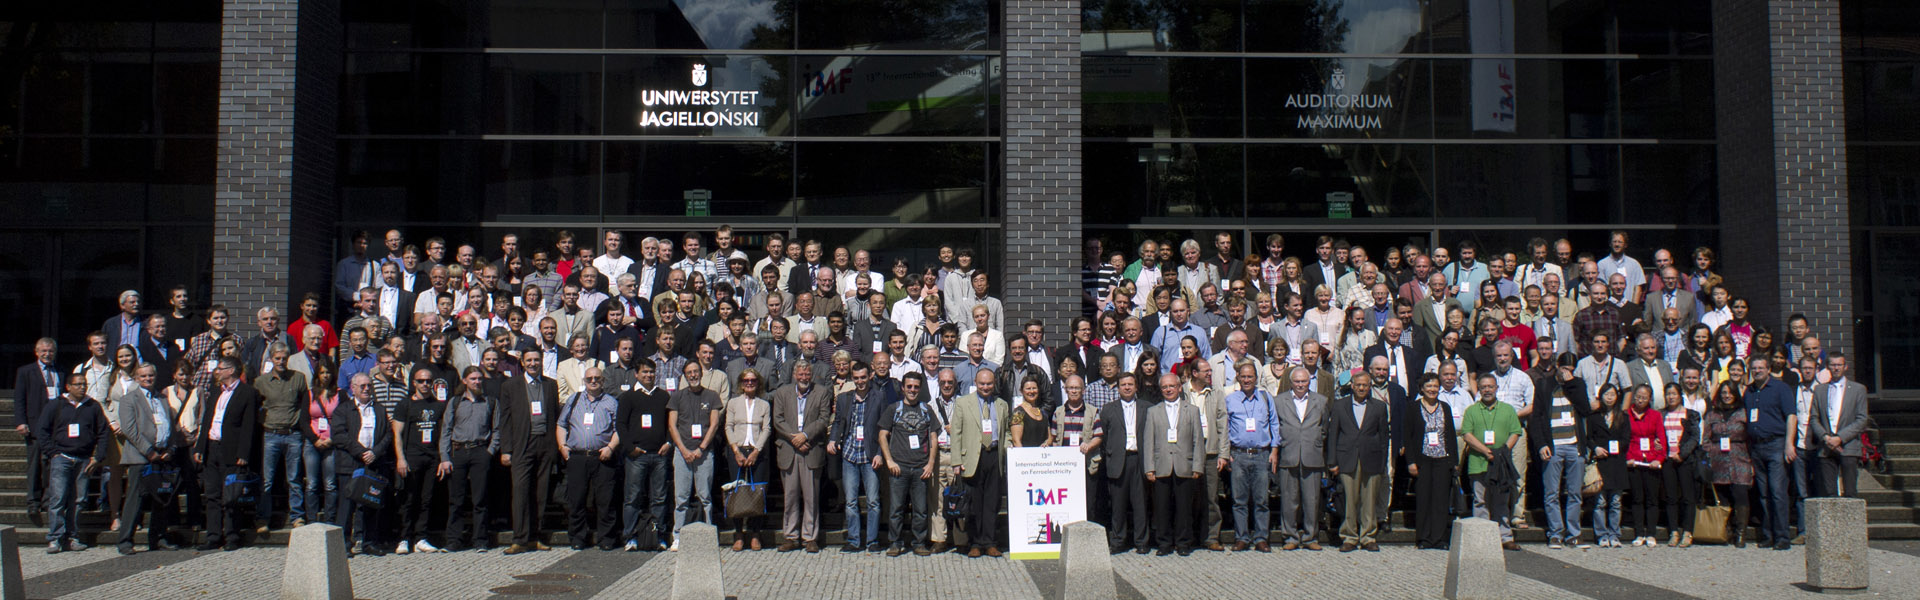 13th International Meeting on Ferroelectricity